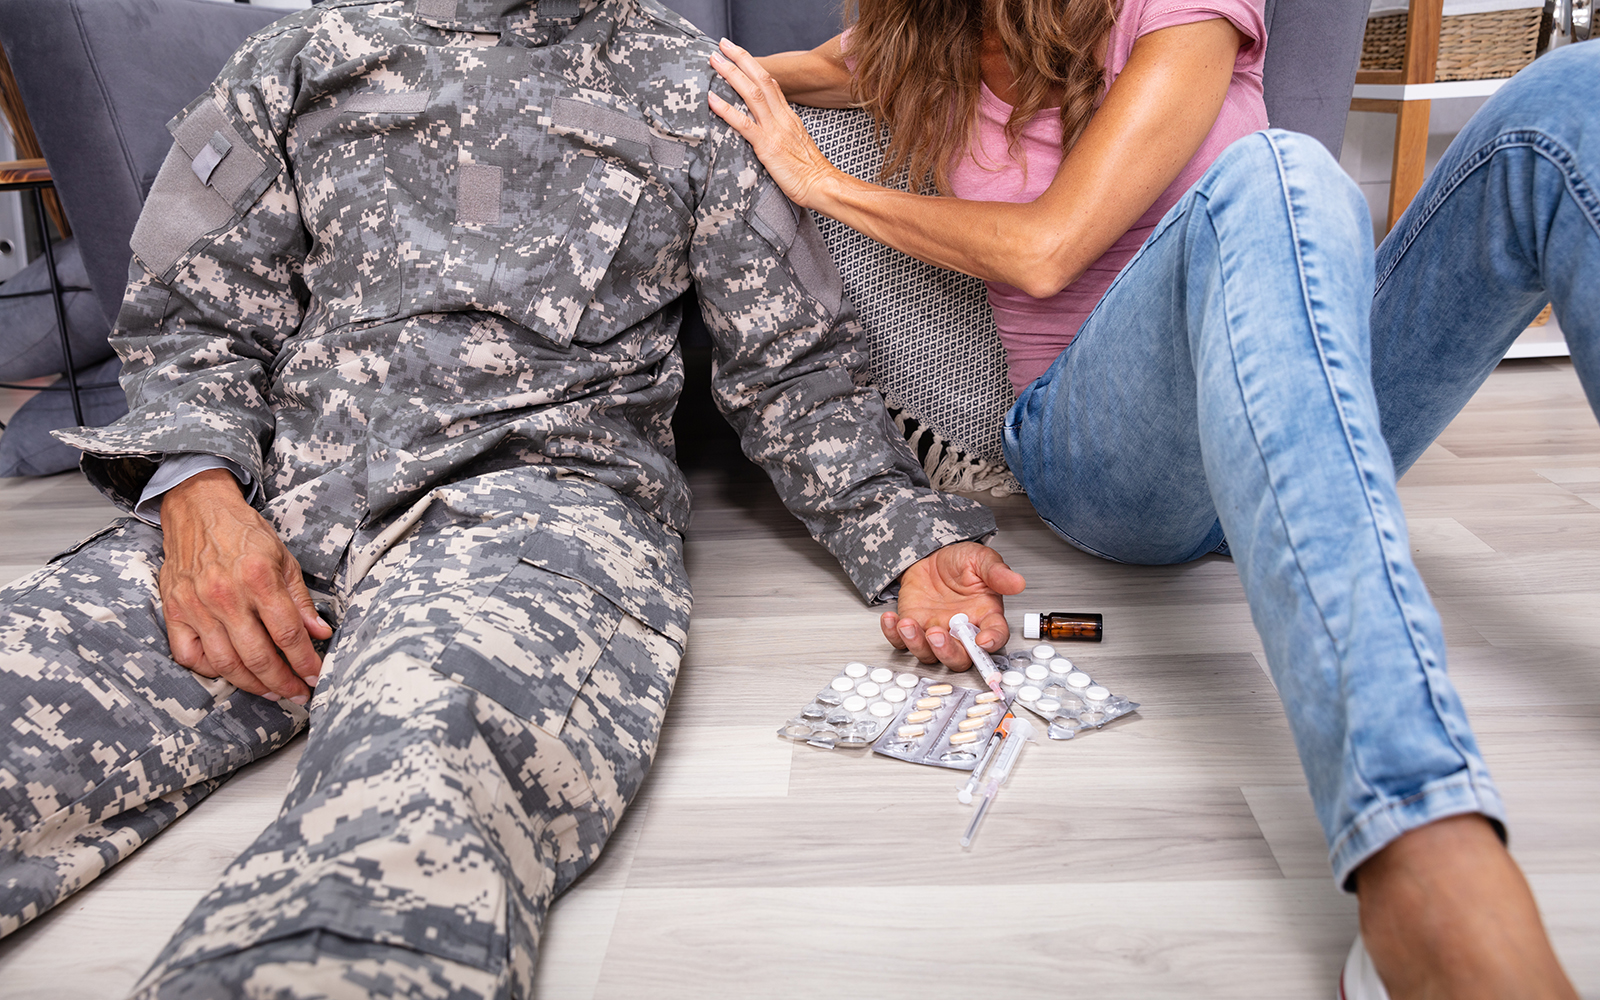 Combat service significantly increases the likelihood of opioid abuse among veterans. (Getty Images)